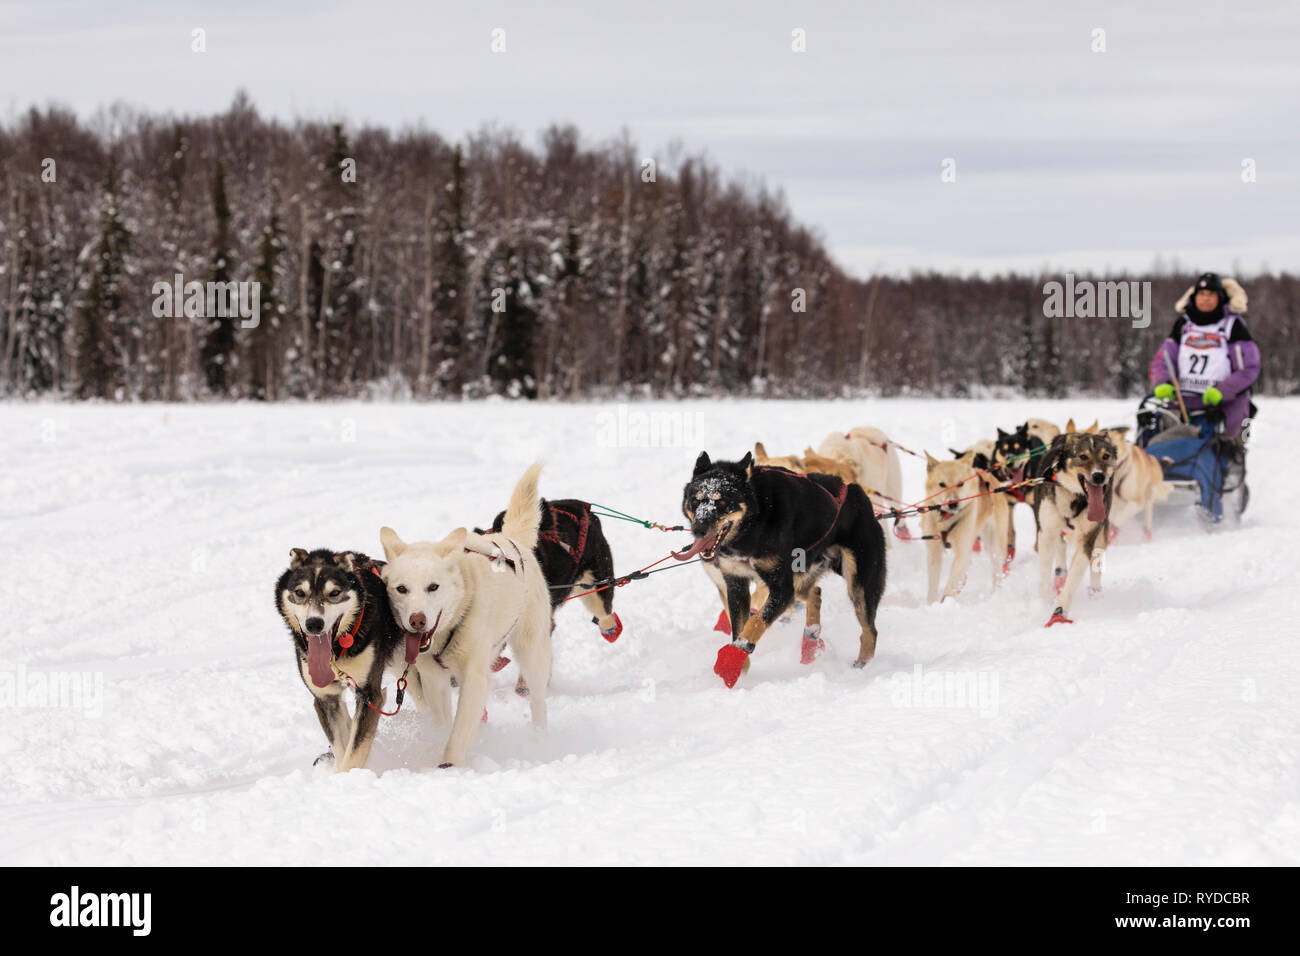 Musher Marcelle Fressineau after the restart in Willow of the 47th Iditarod Trail Sled Dog Race in Southcentral Alaska. - Stock Image